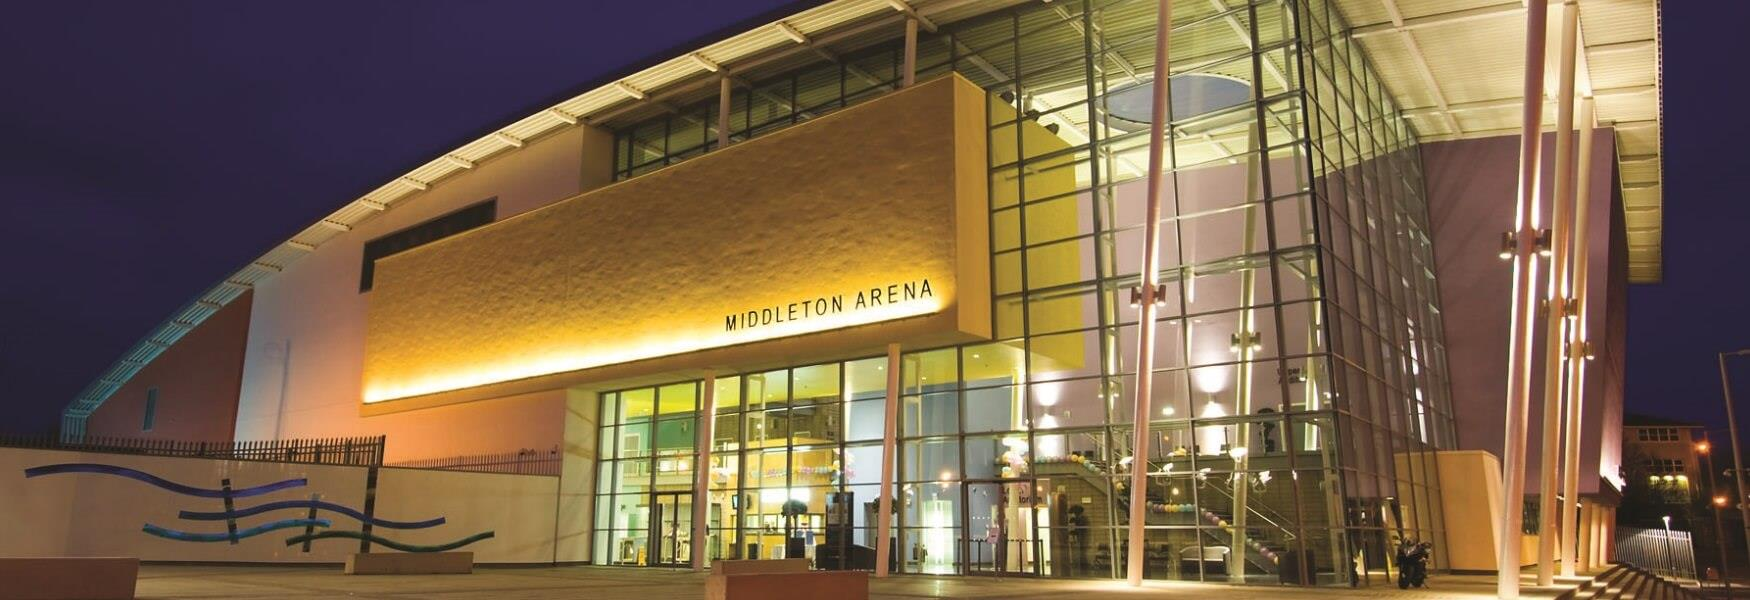 Exterior of Middleton Arena at night.